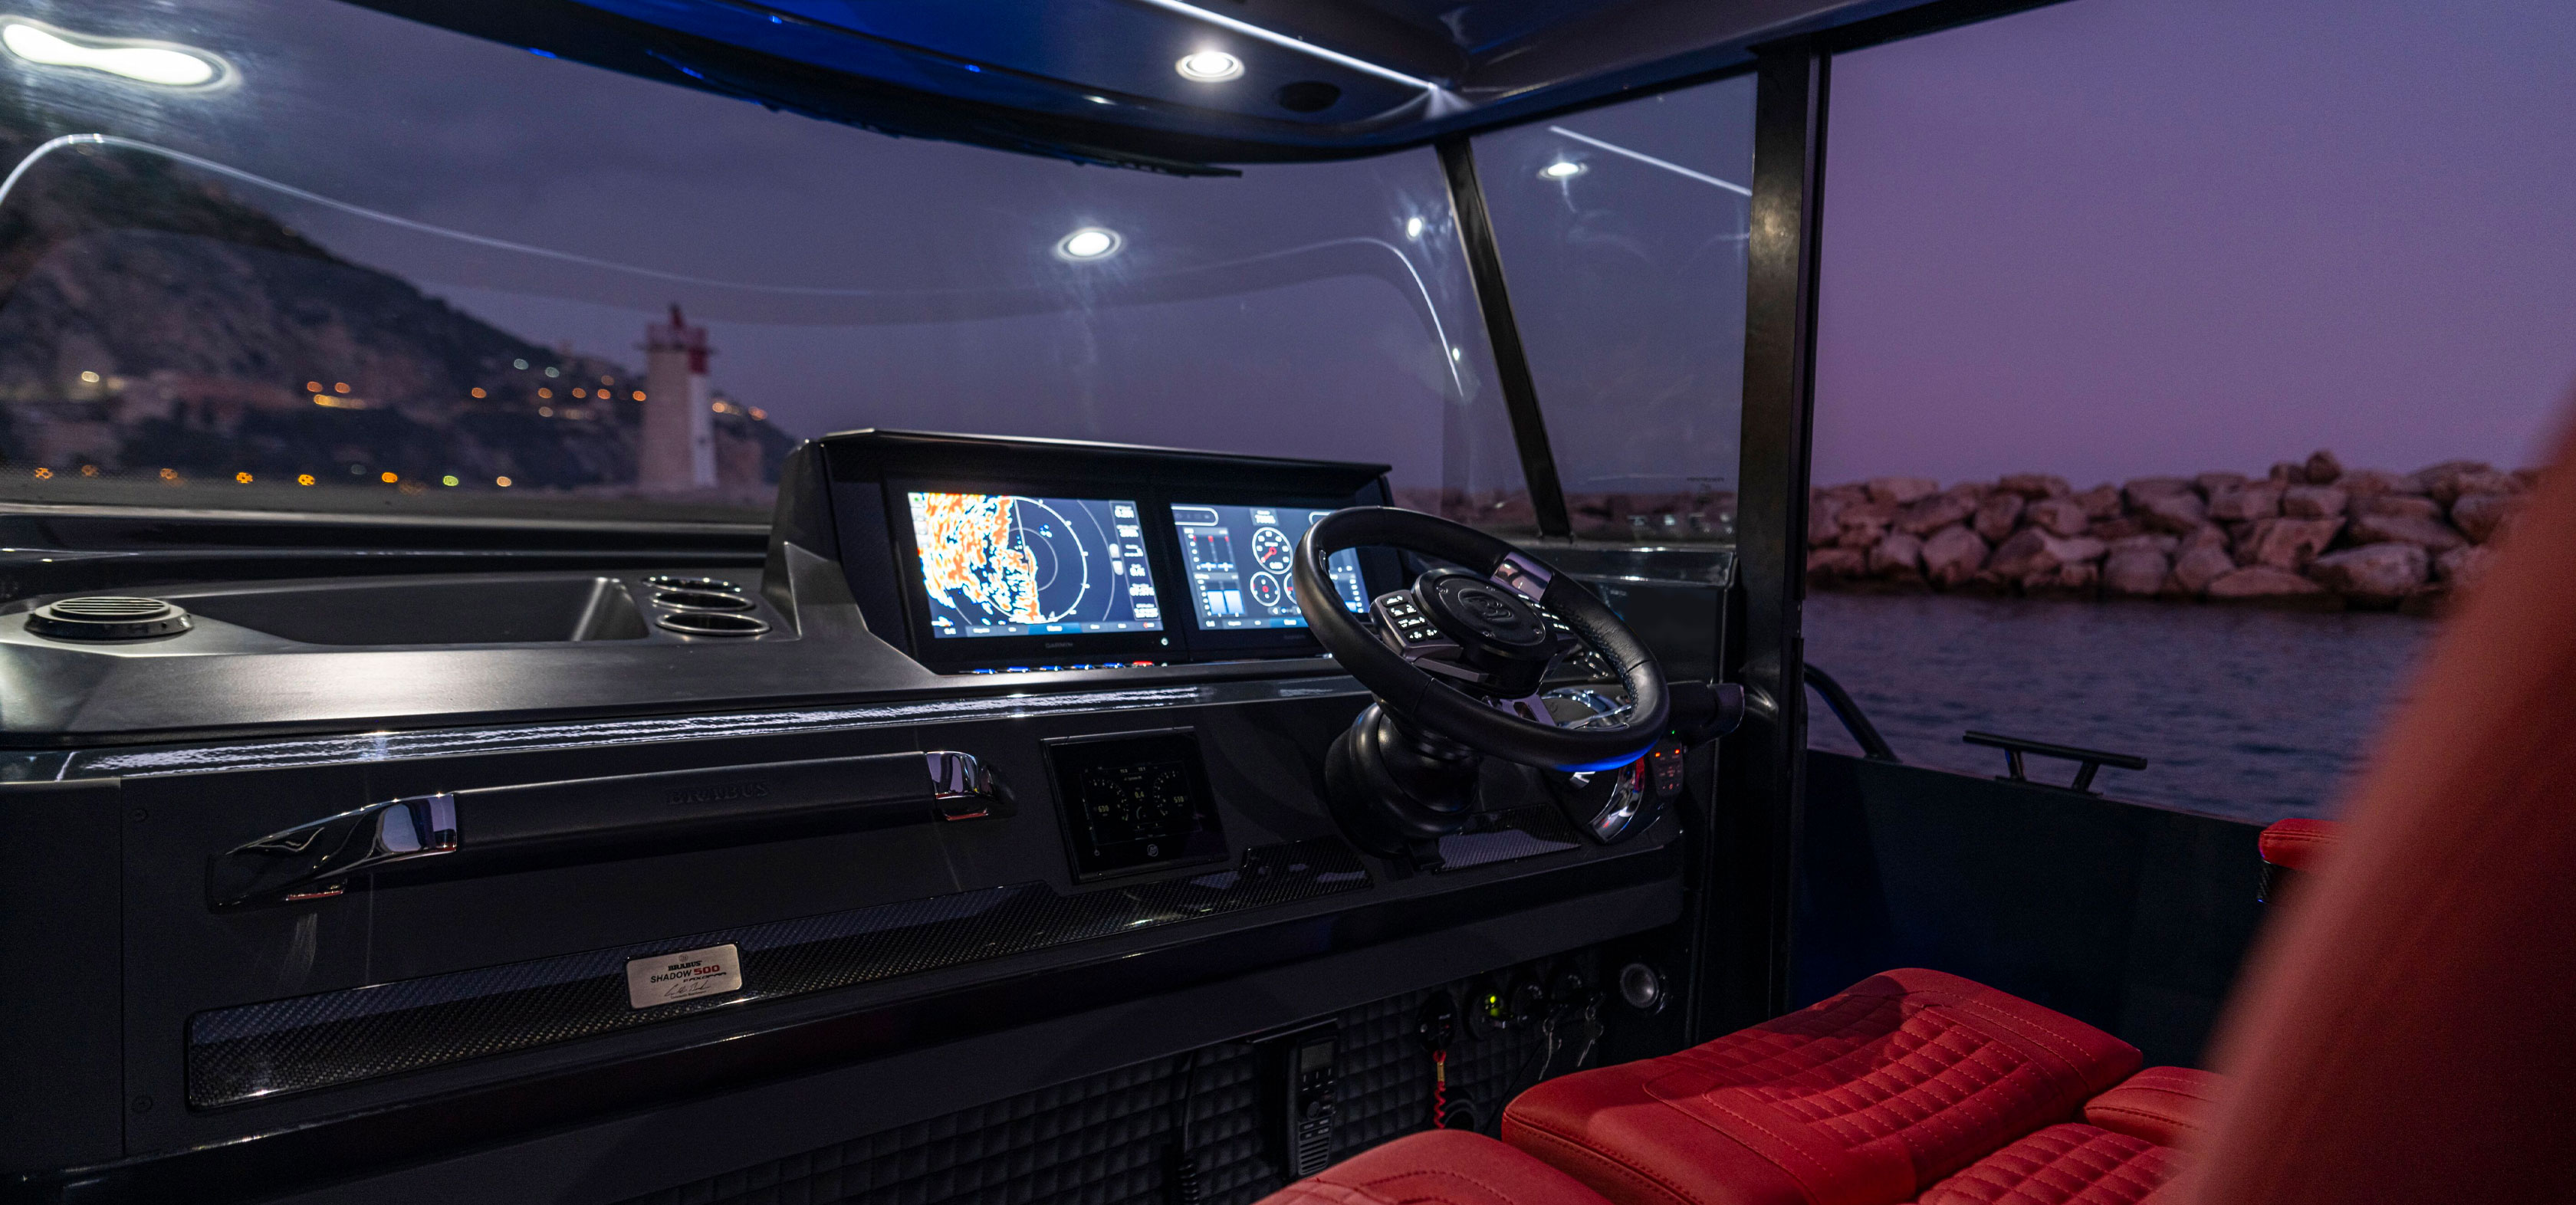 Brabus Shadow 500 Cabin Limited Edition